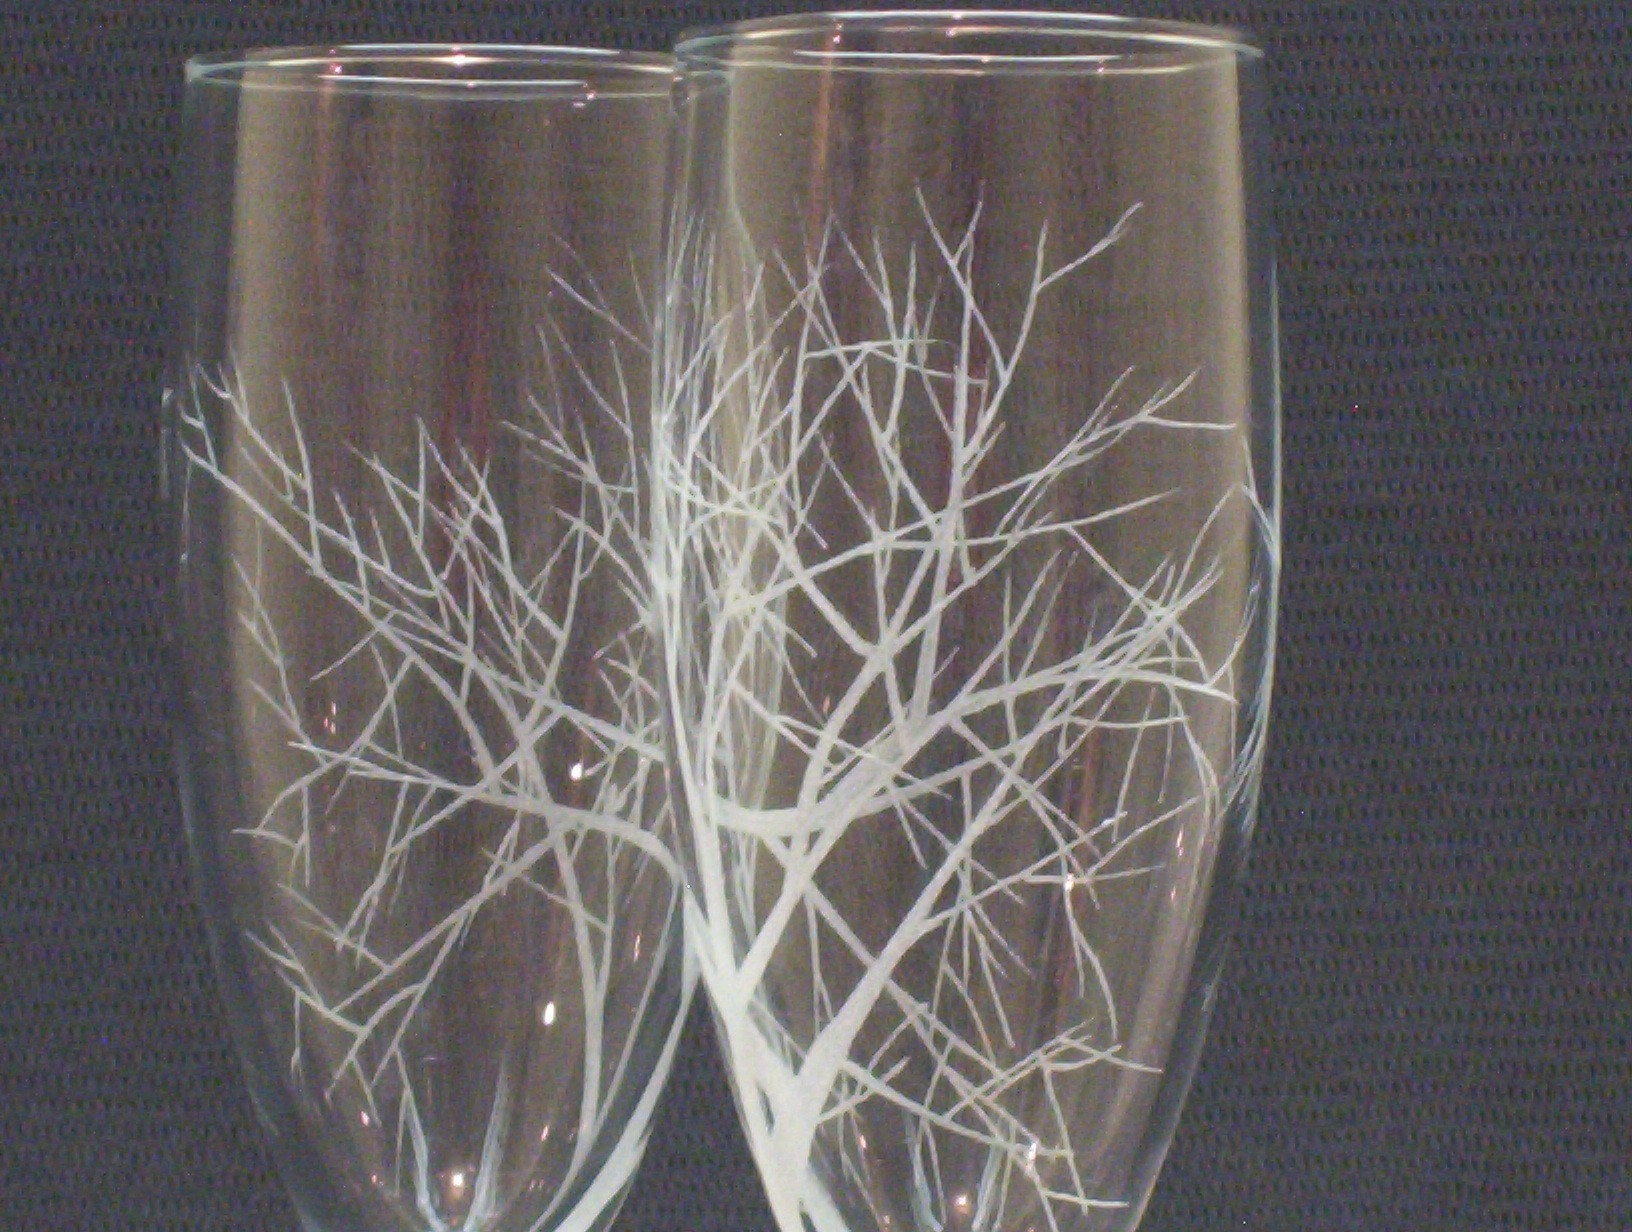 Etsy :: daydreemdesigns :: Reaching Branches, Engraved Champagne Glasses from etsy.com